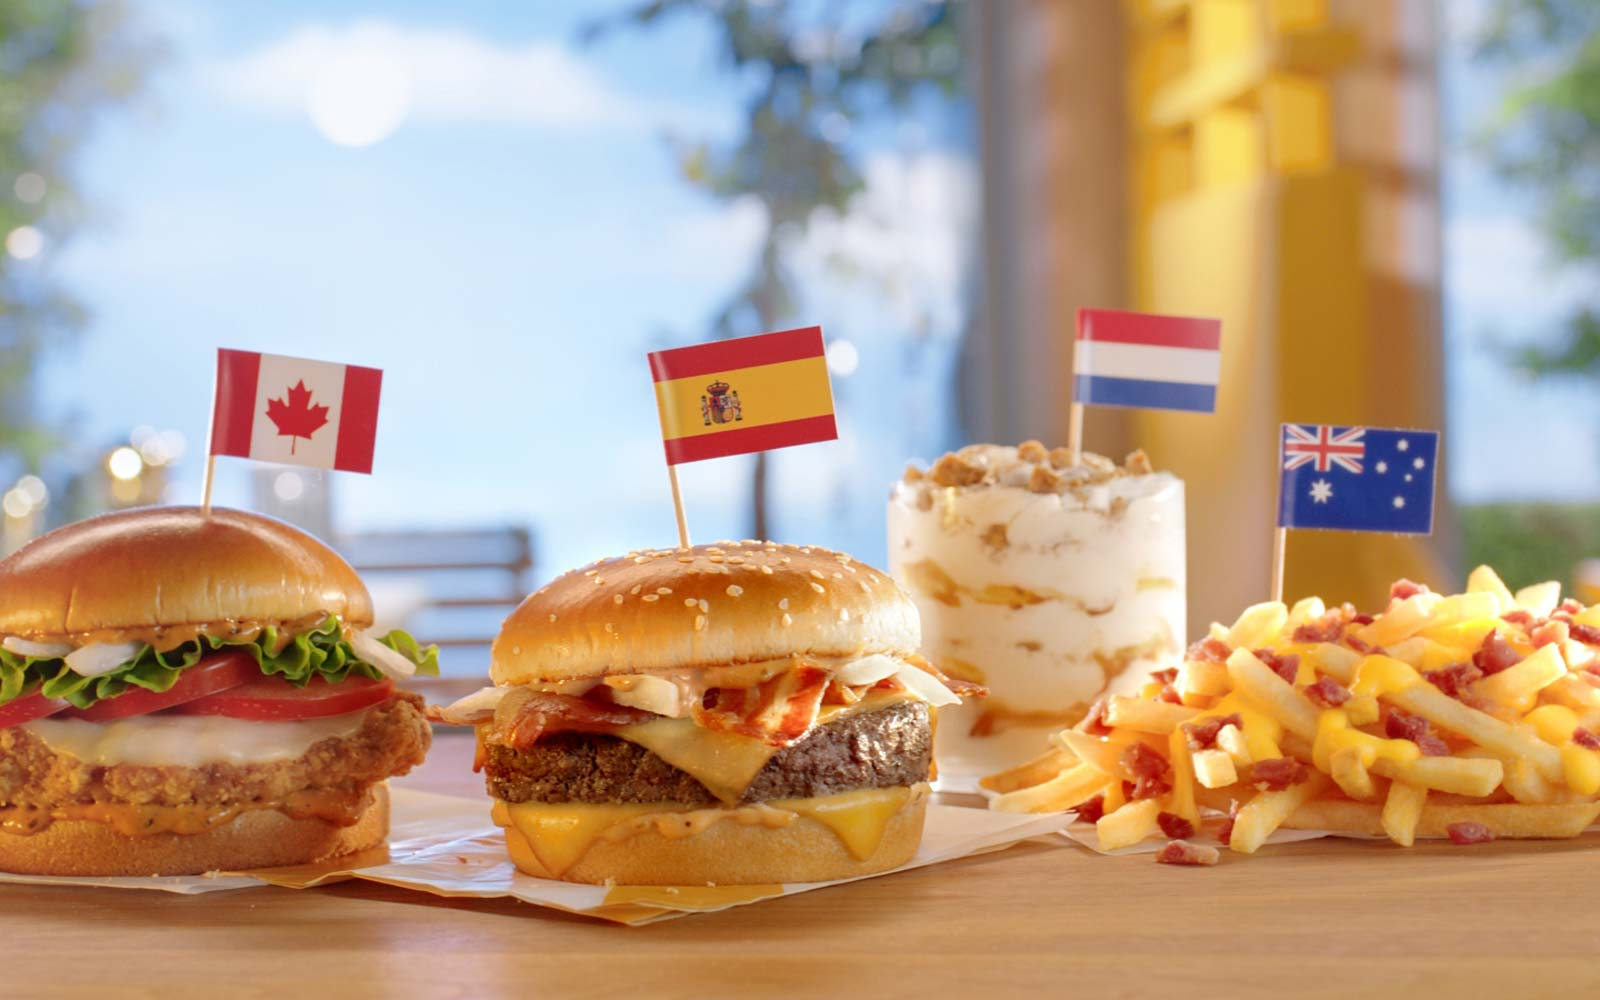 Worldwide Favorites menu at McDonald's